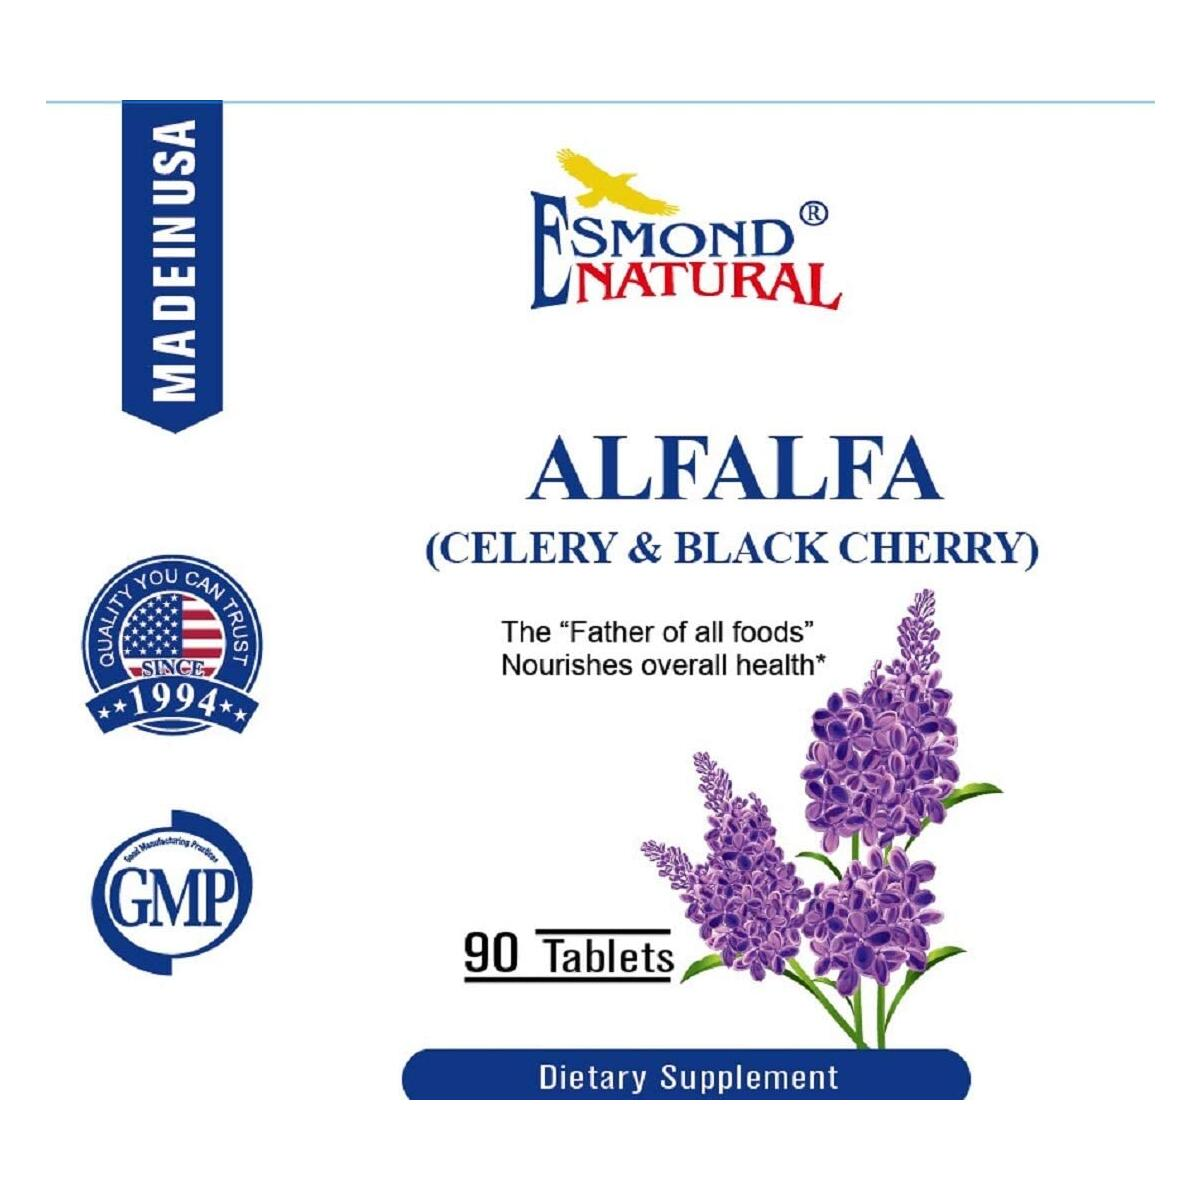 (3 Count, 10% Off) Esmond Natural: Alfalfa - Celery & Black Cherry (Nourishes Overall Health), GMP, Natural Product Assn Certified, Made in USA-1500mg, 270 Tablets